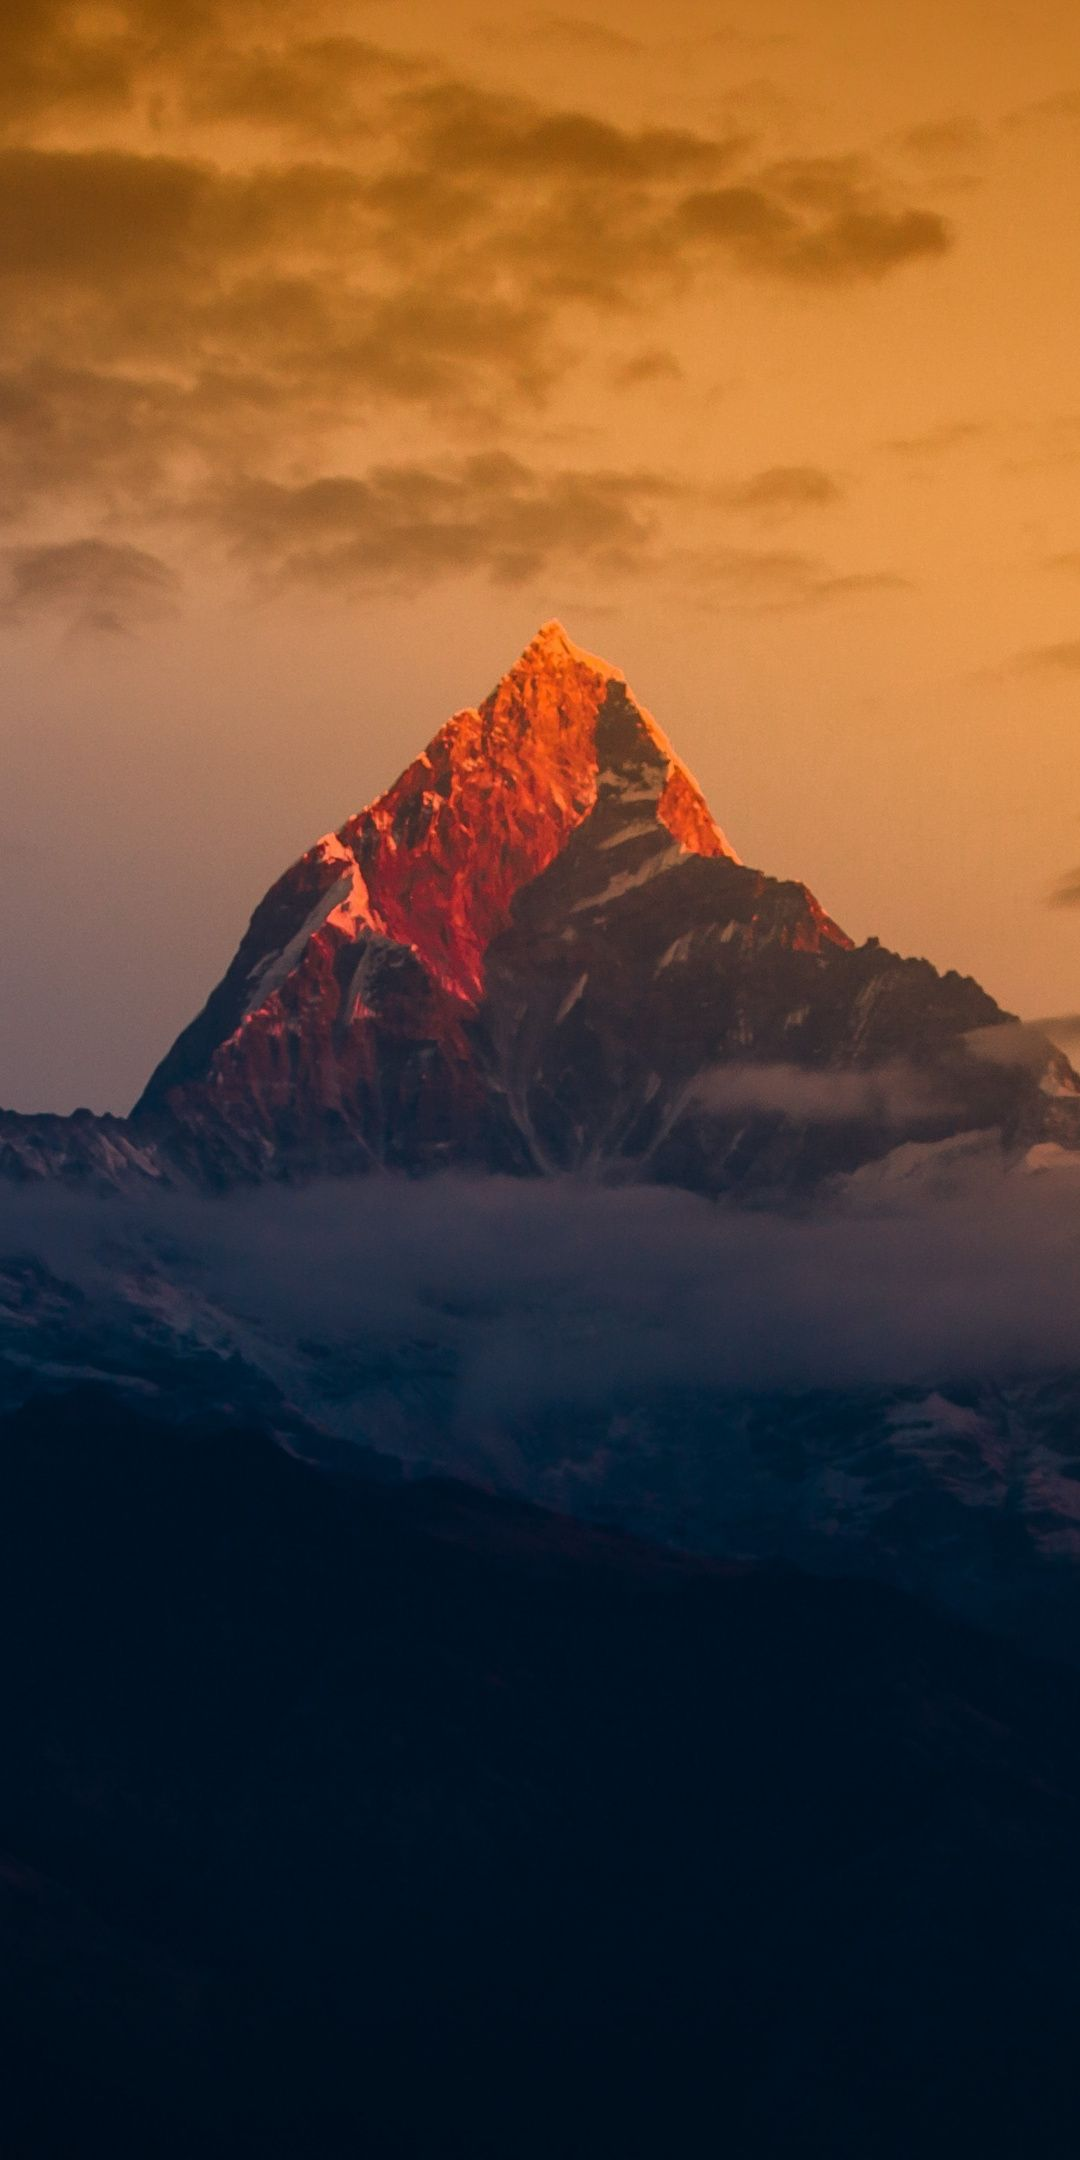 Himalayas Mountain Peak Sunset Clouds 1080x2160 Wallpaper Mountain Wallpaper Science And Nature Photography